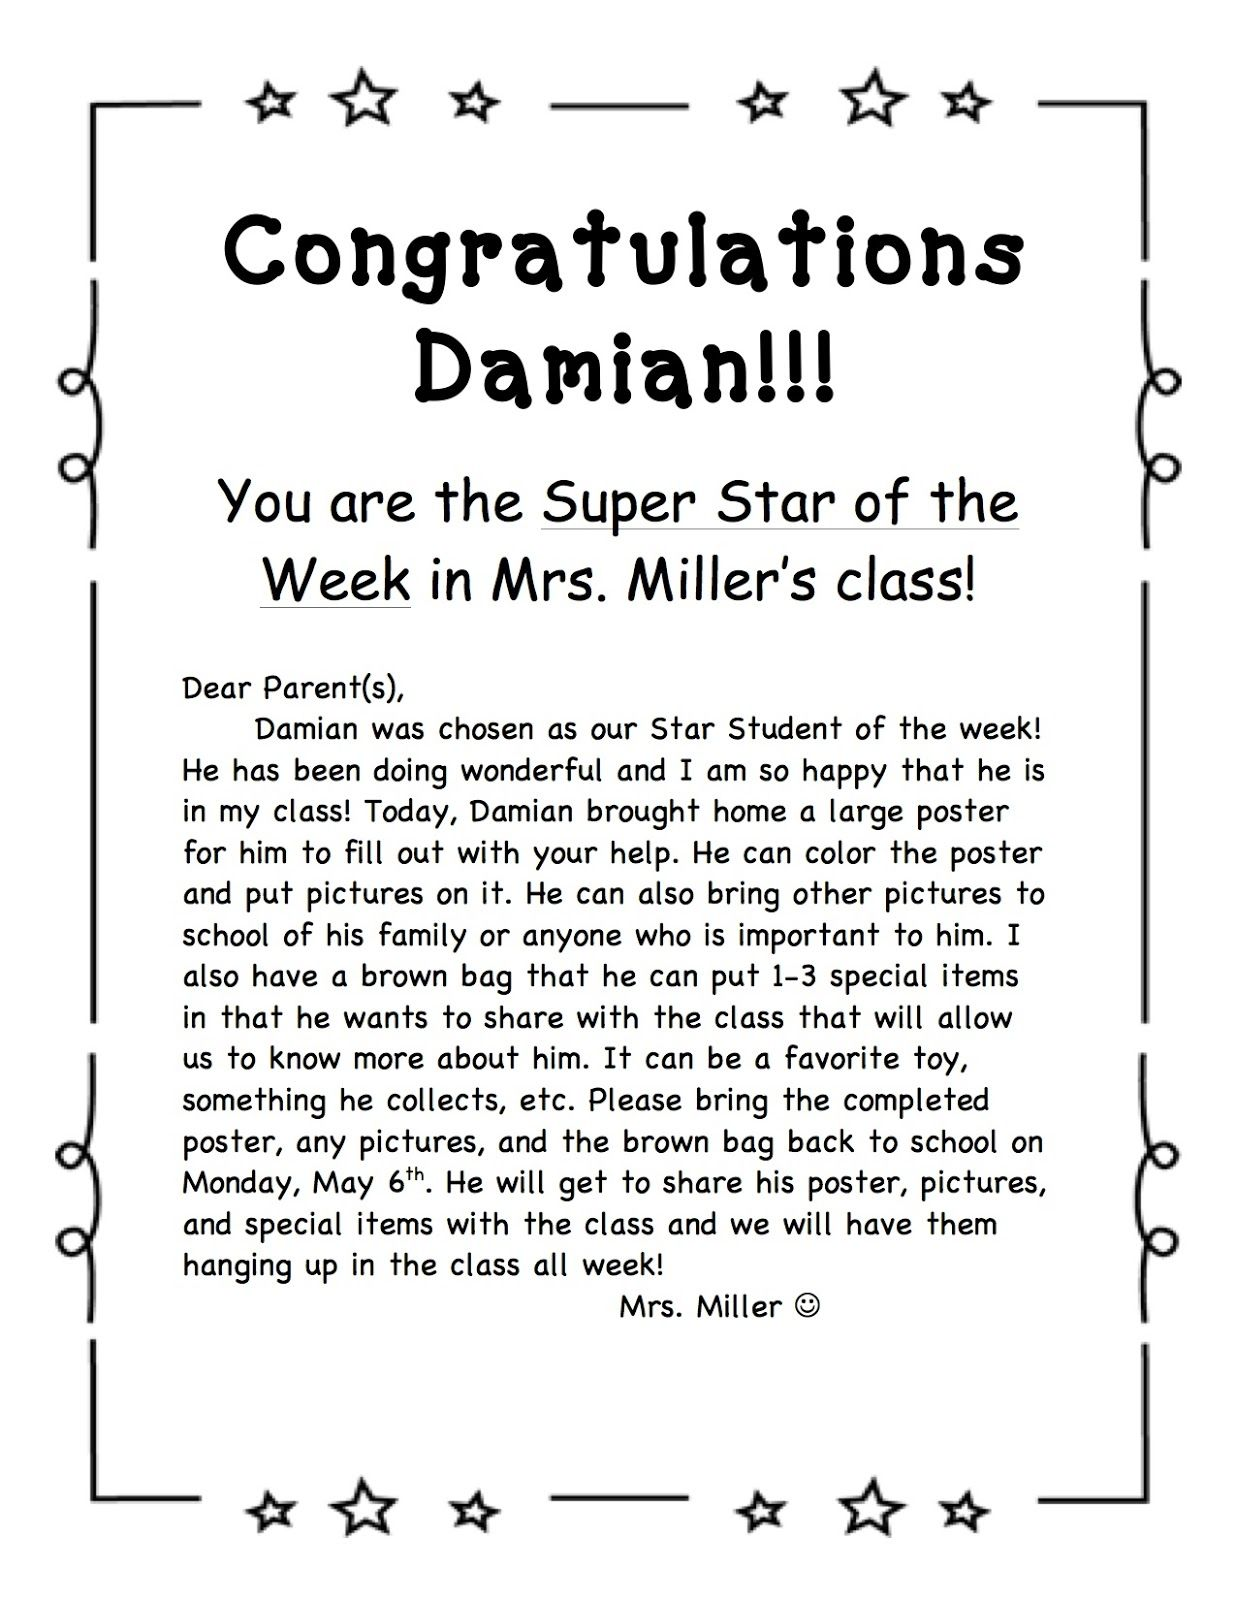 star of the week poster template - star student of the week school pinterest star